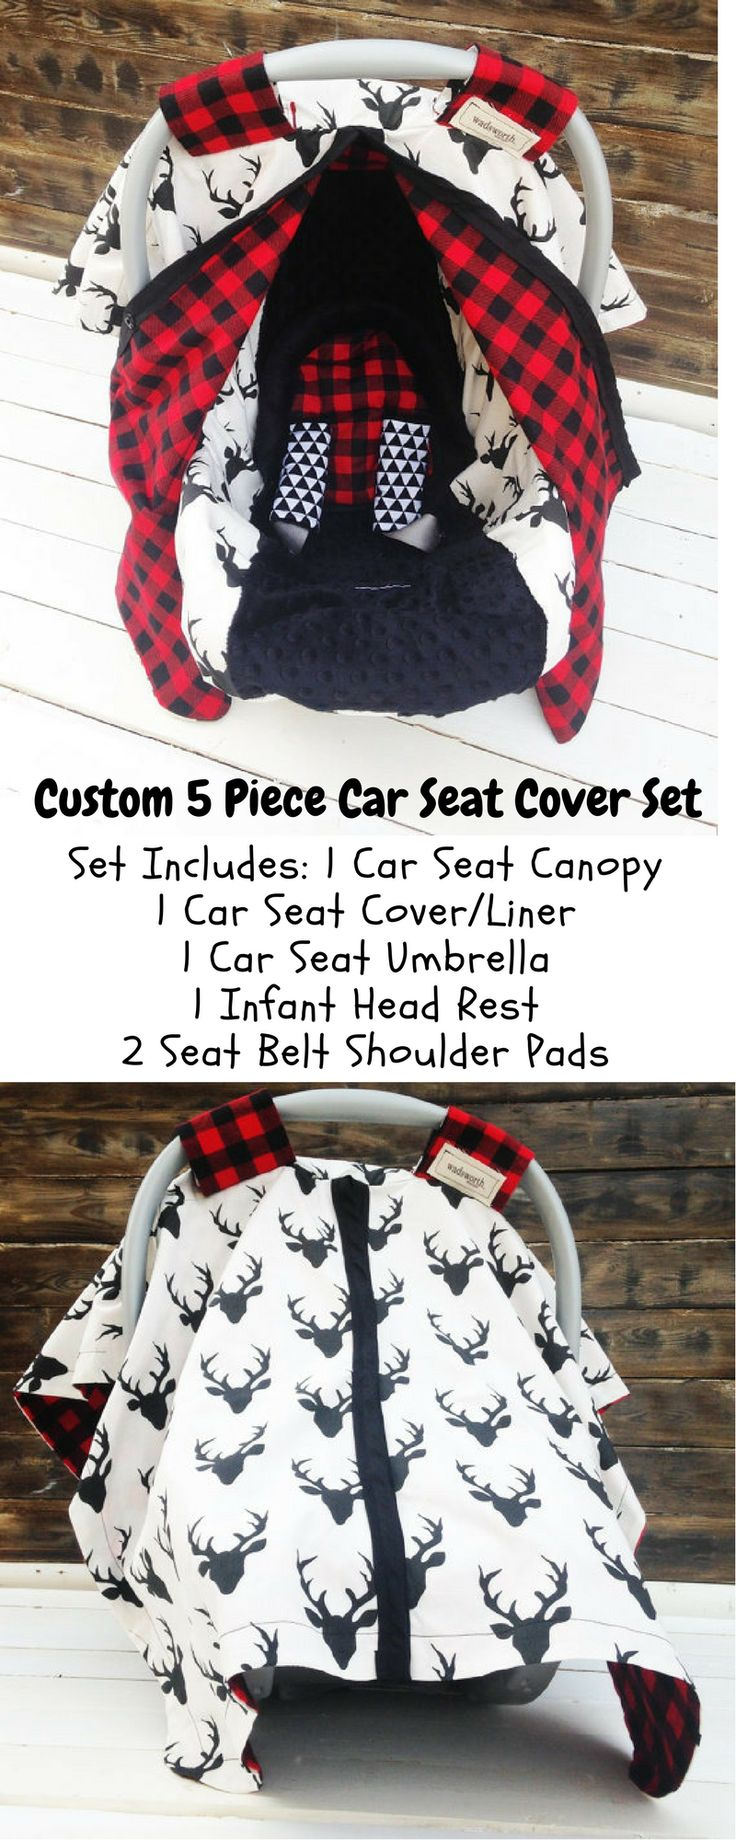 Little Boy 5 piece car seat cover set in woodland theme. #ad #carseat#cover#set#woodland#infant#littleboy